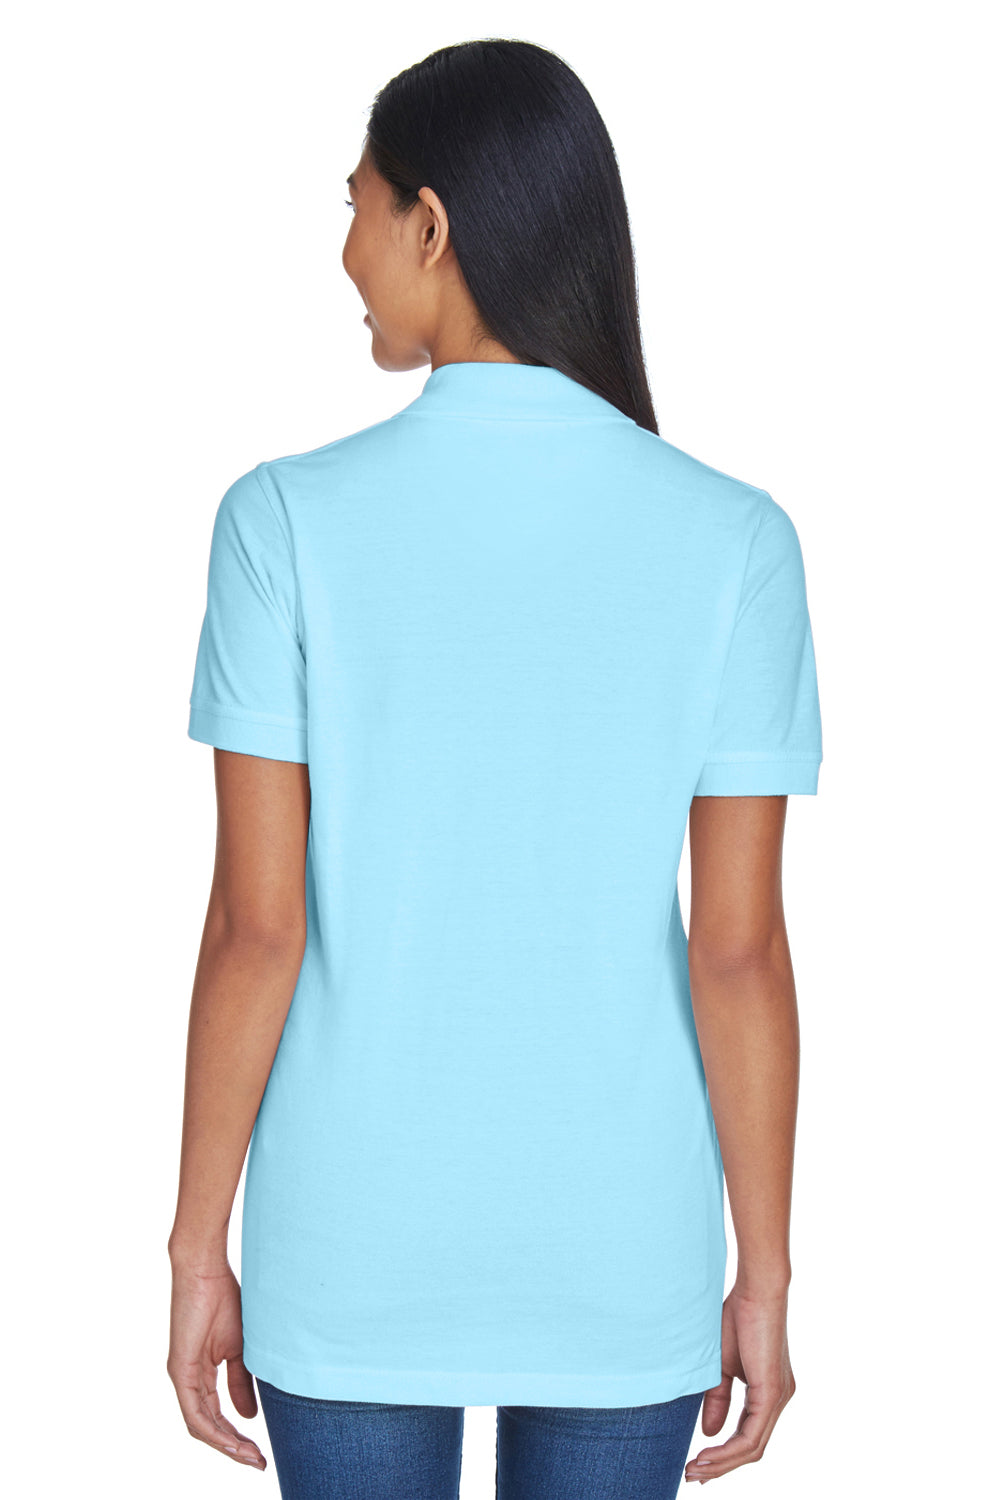 UltraClub 8530 Womens Classic Short Sleeve Polo Shirt Baby Blue Back